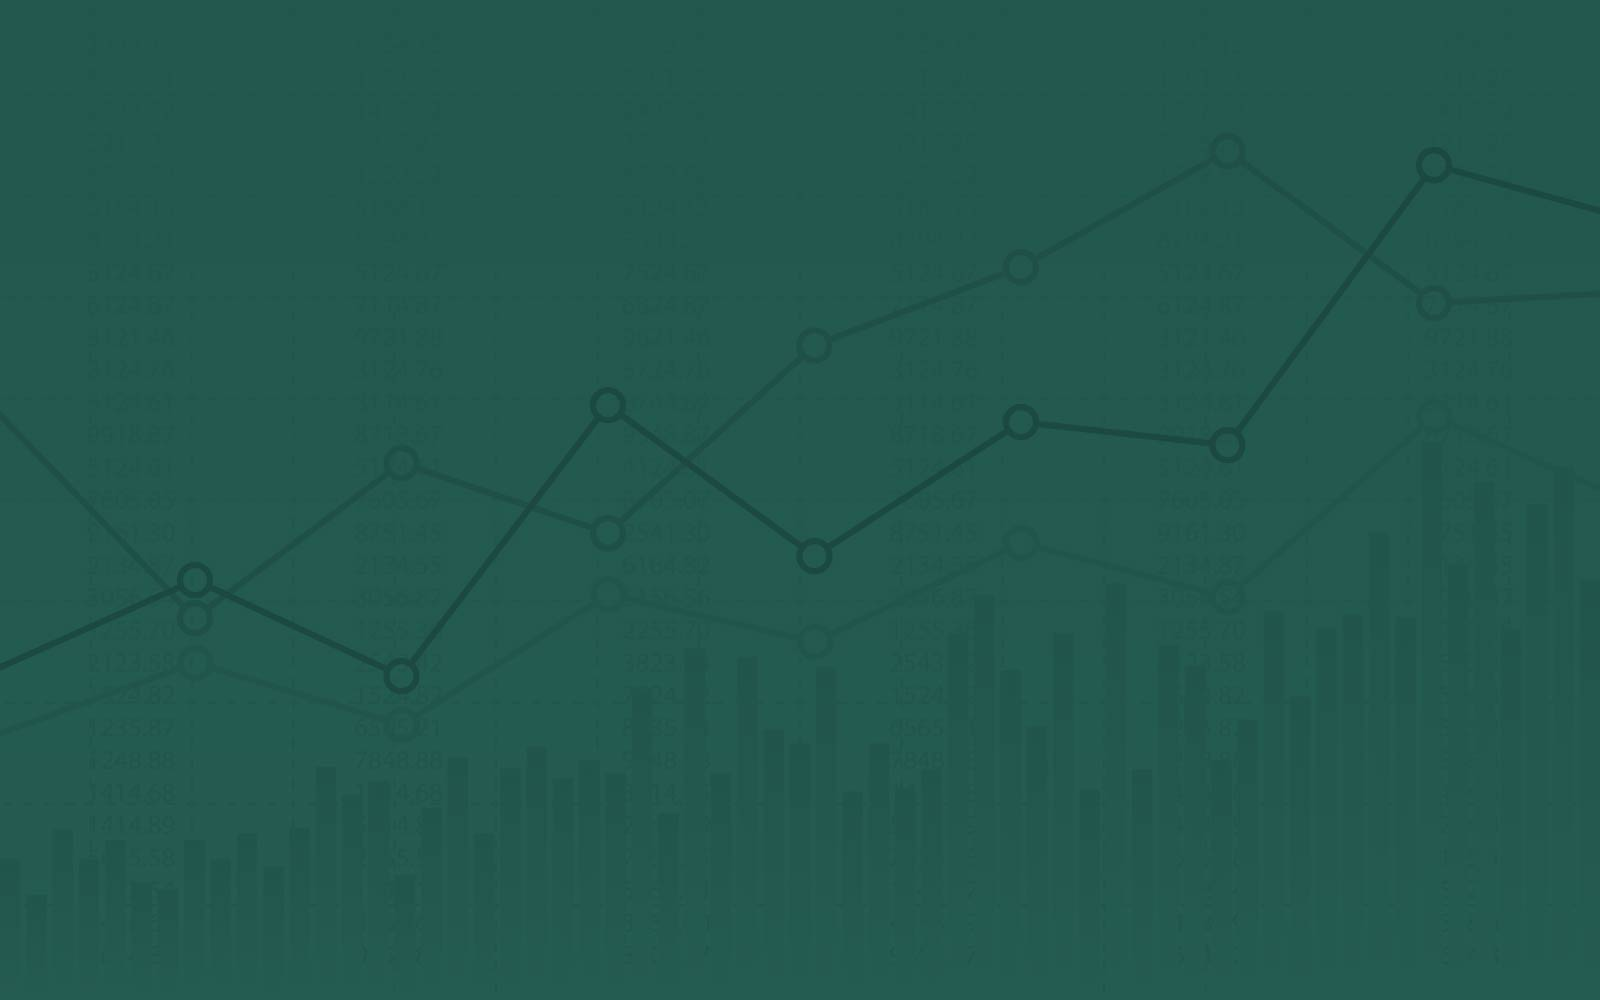 background image for analytics post